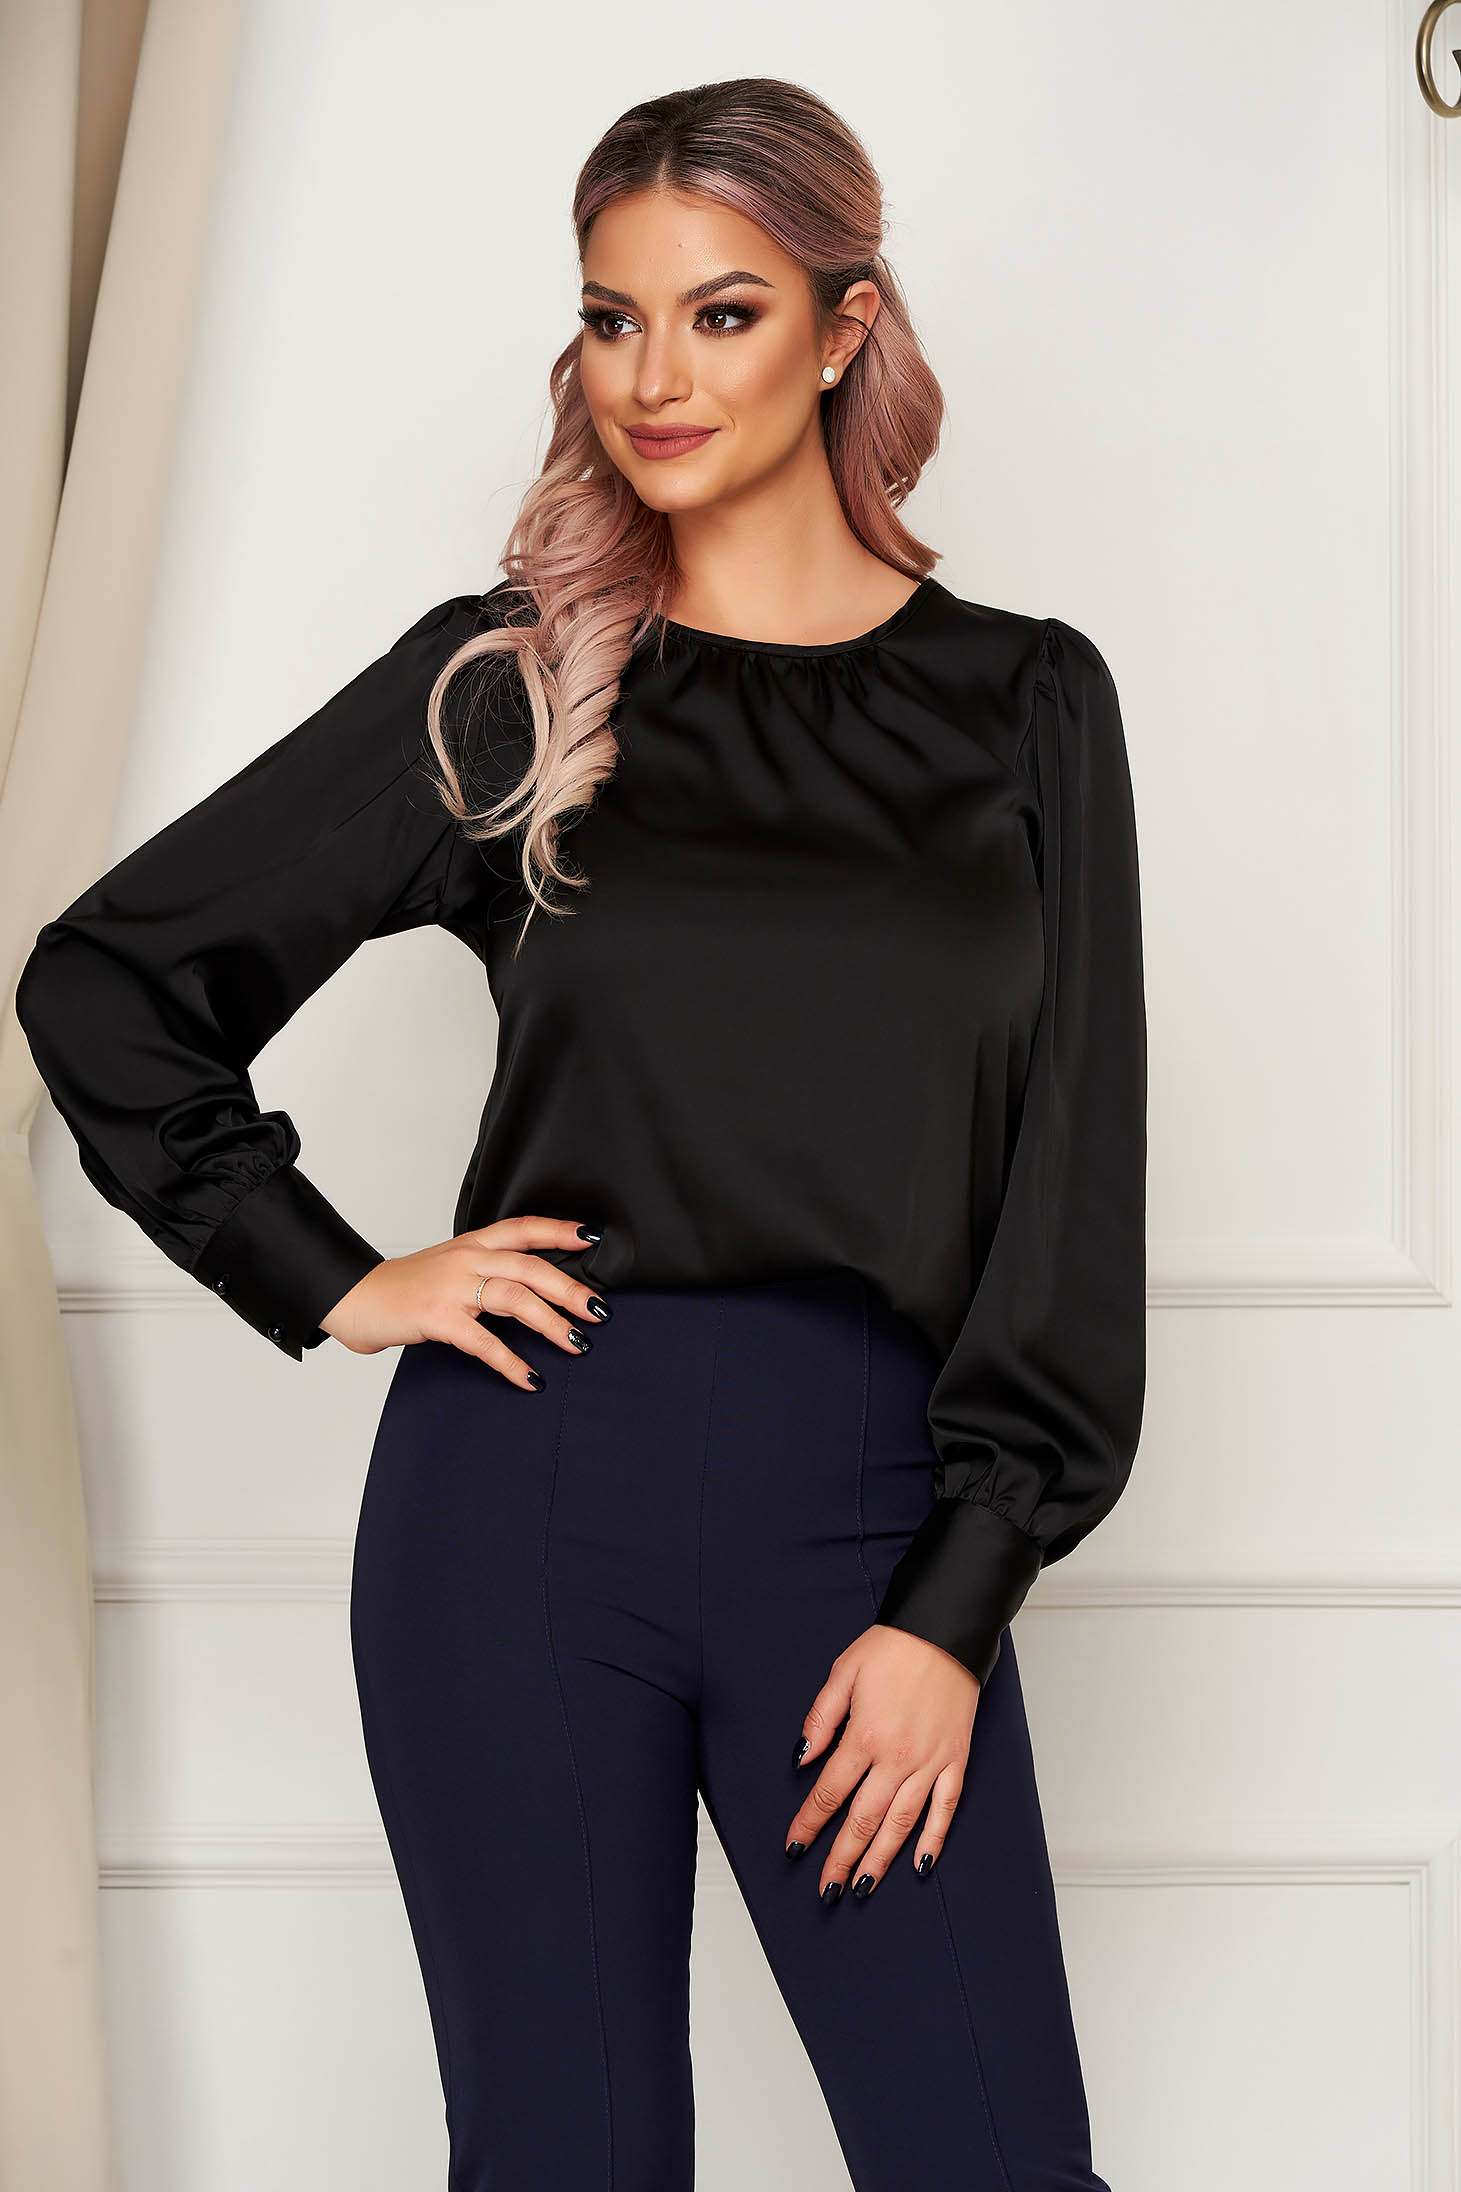 Black women`s blouse office loose fit from satin fabric texture